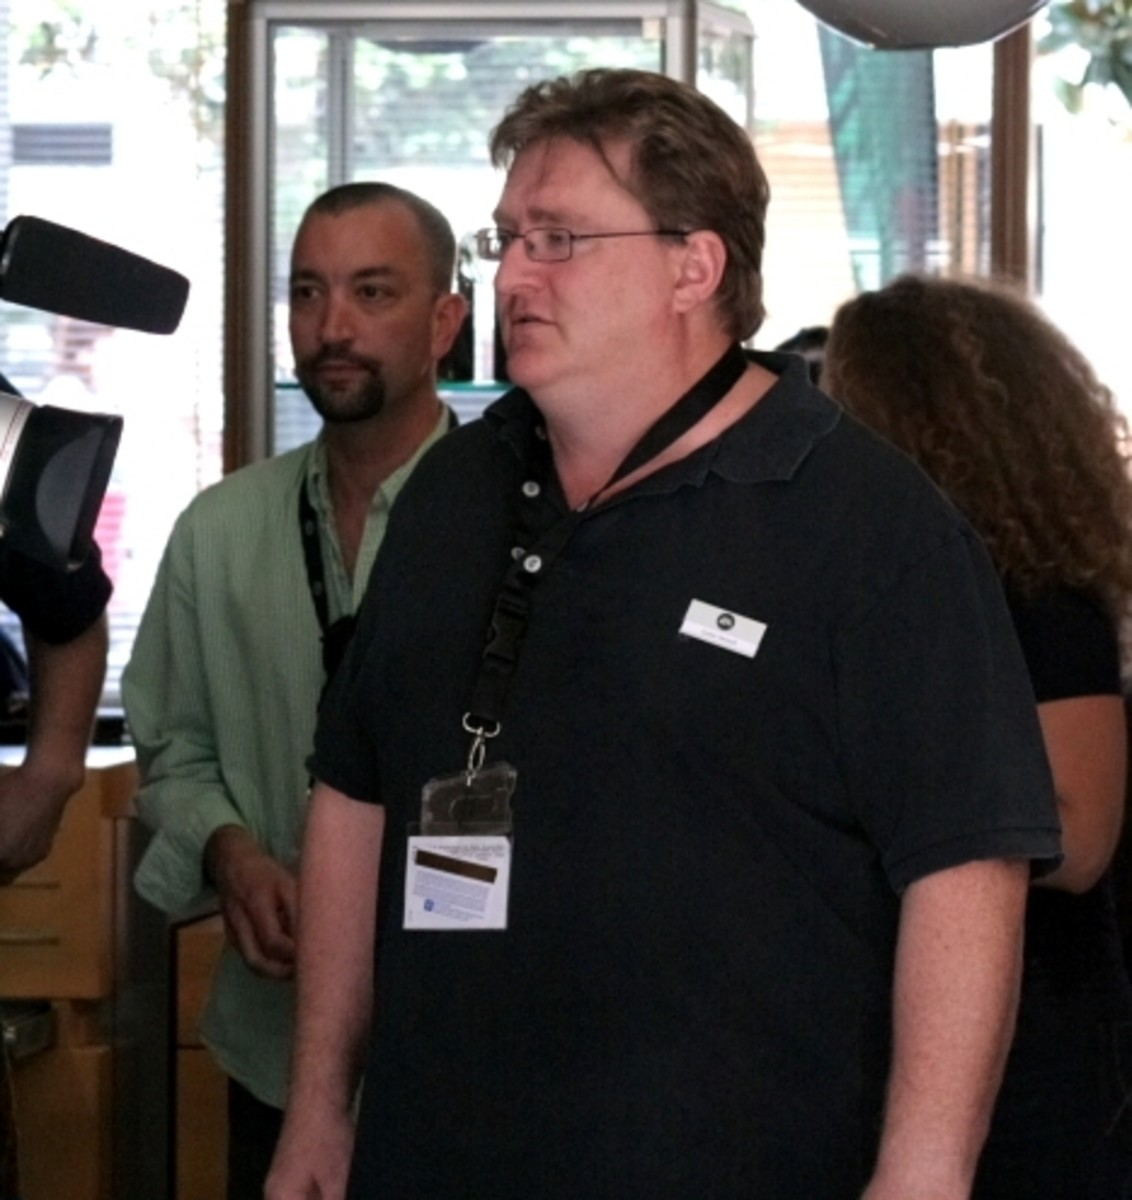 Gabe Newell, owner and Managing Director of Valve